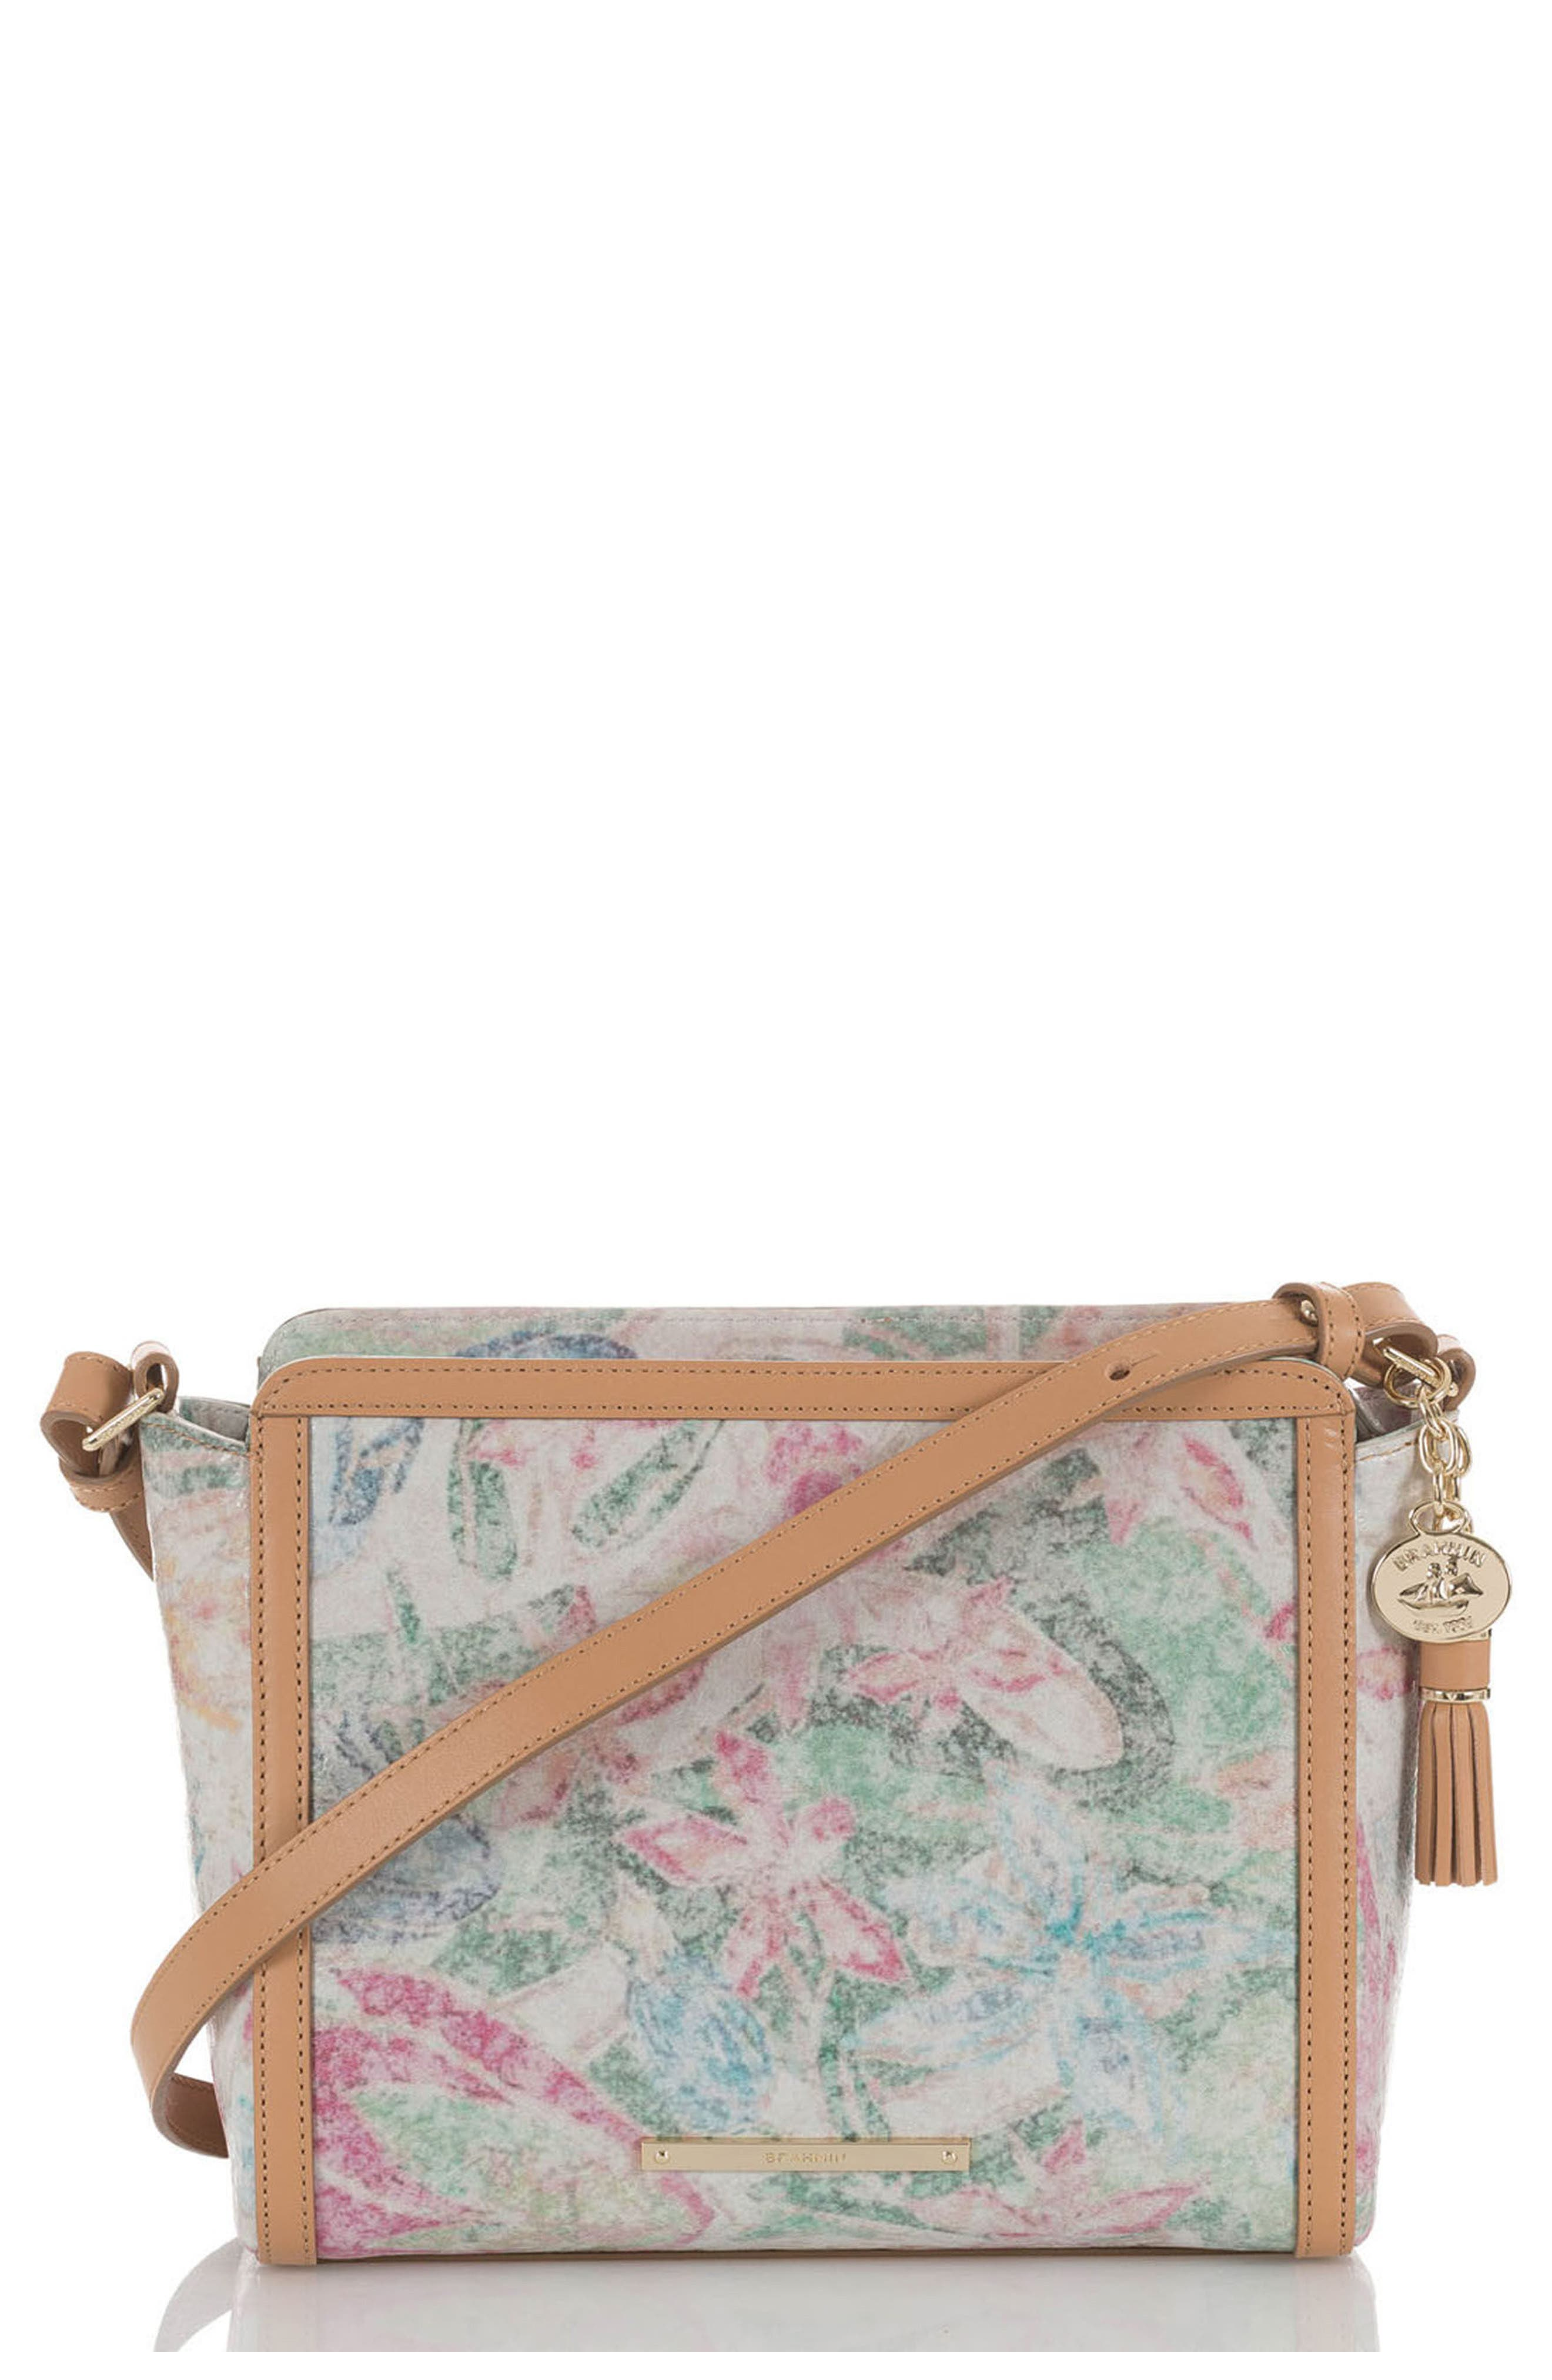 Floral Carrie Leather Crossbody Bag,                         Main,                         color, Creme